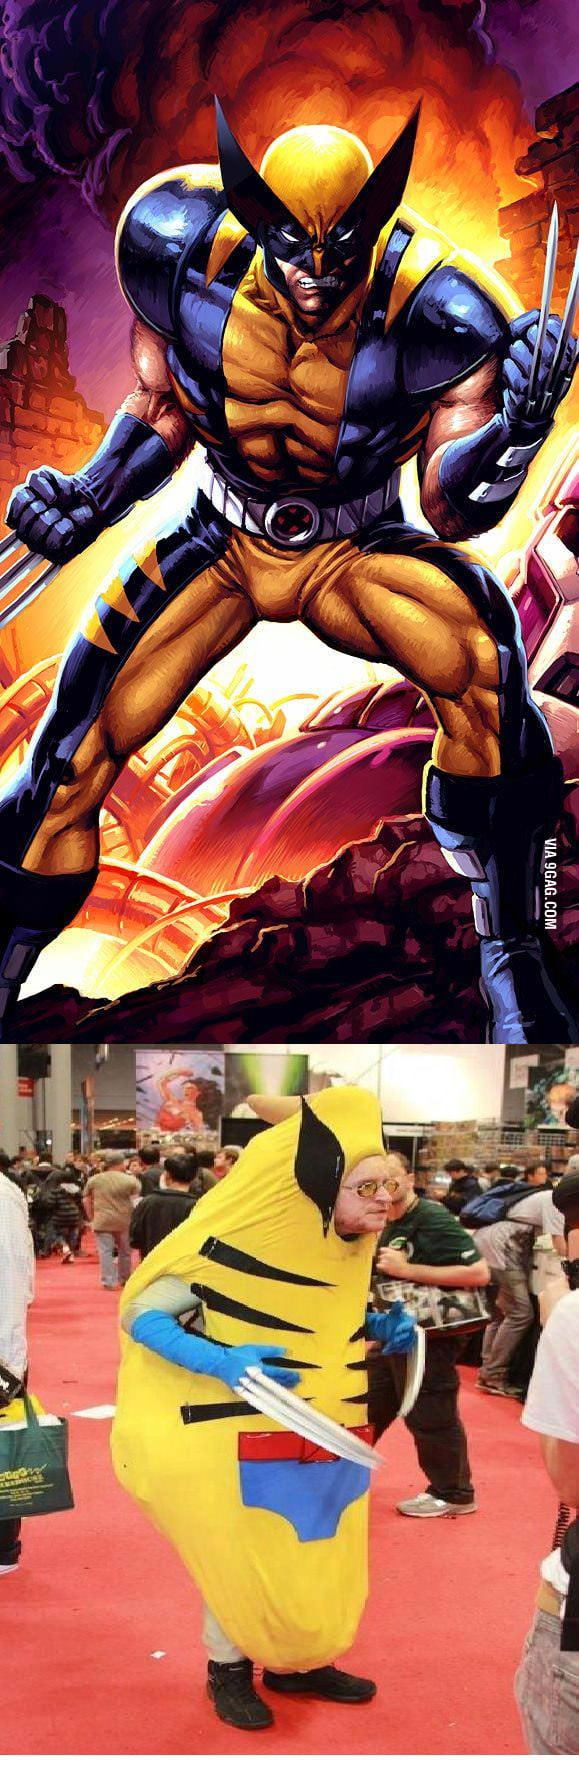 Wolverine cosplay.. Nailed it!